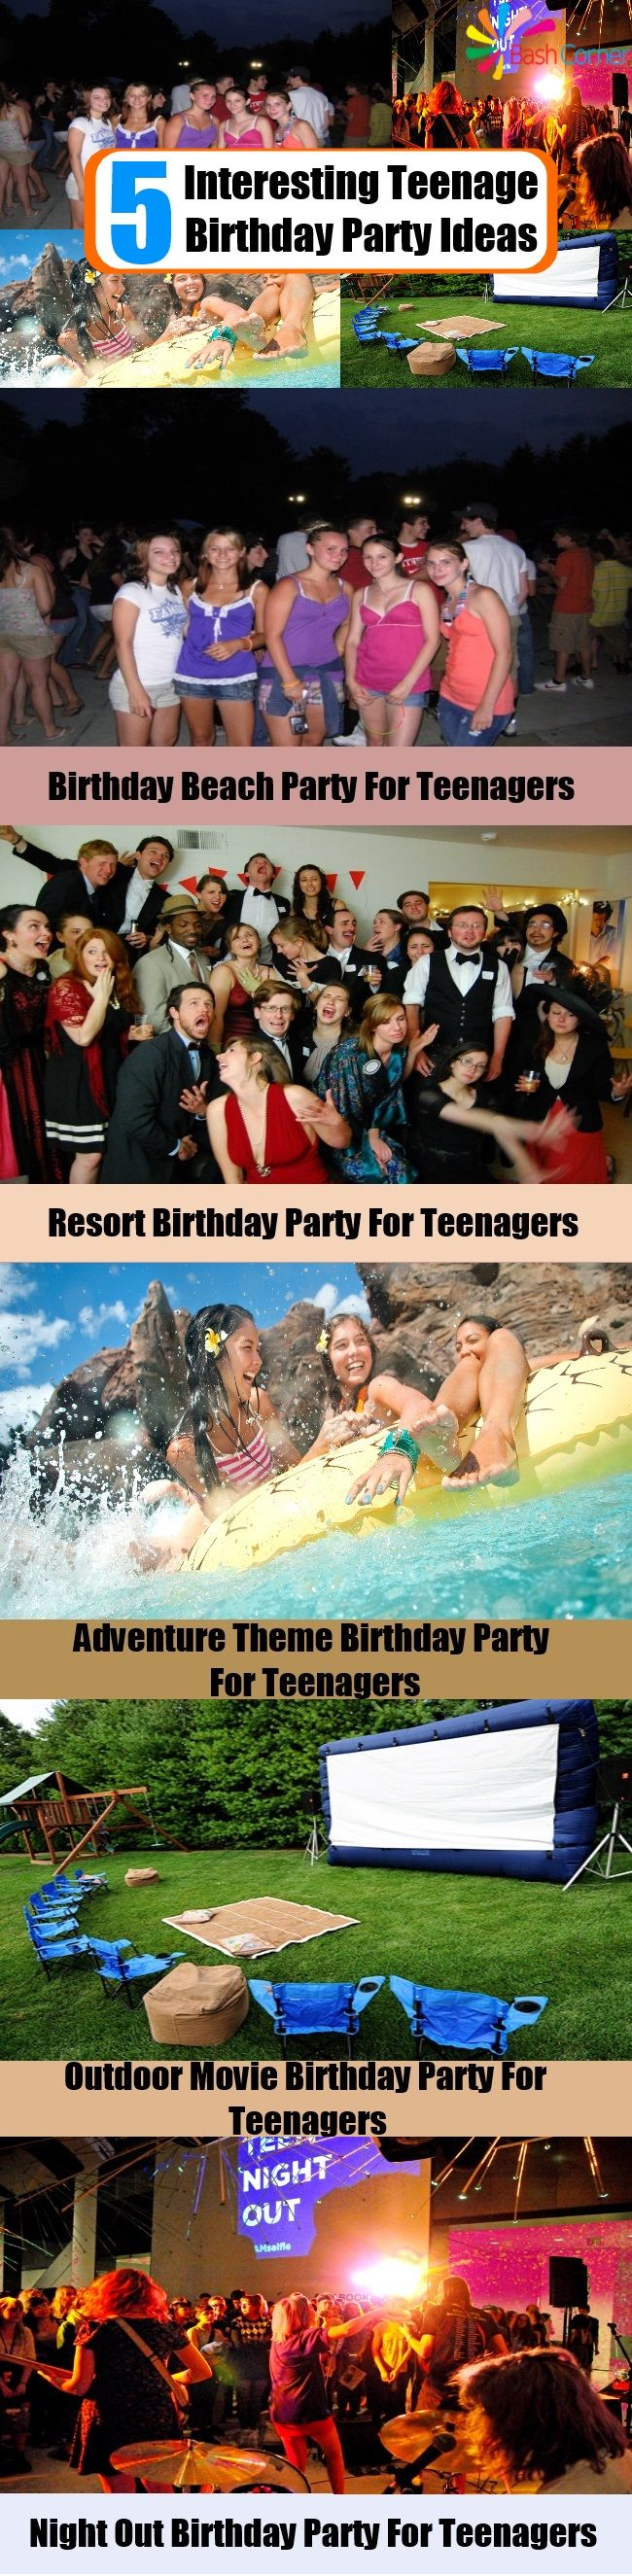 5 Interesting Teenage Birthday Party Ideas